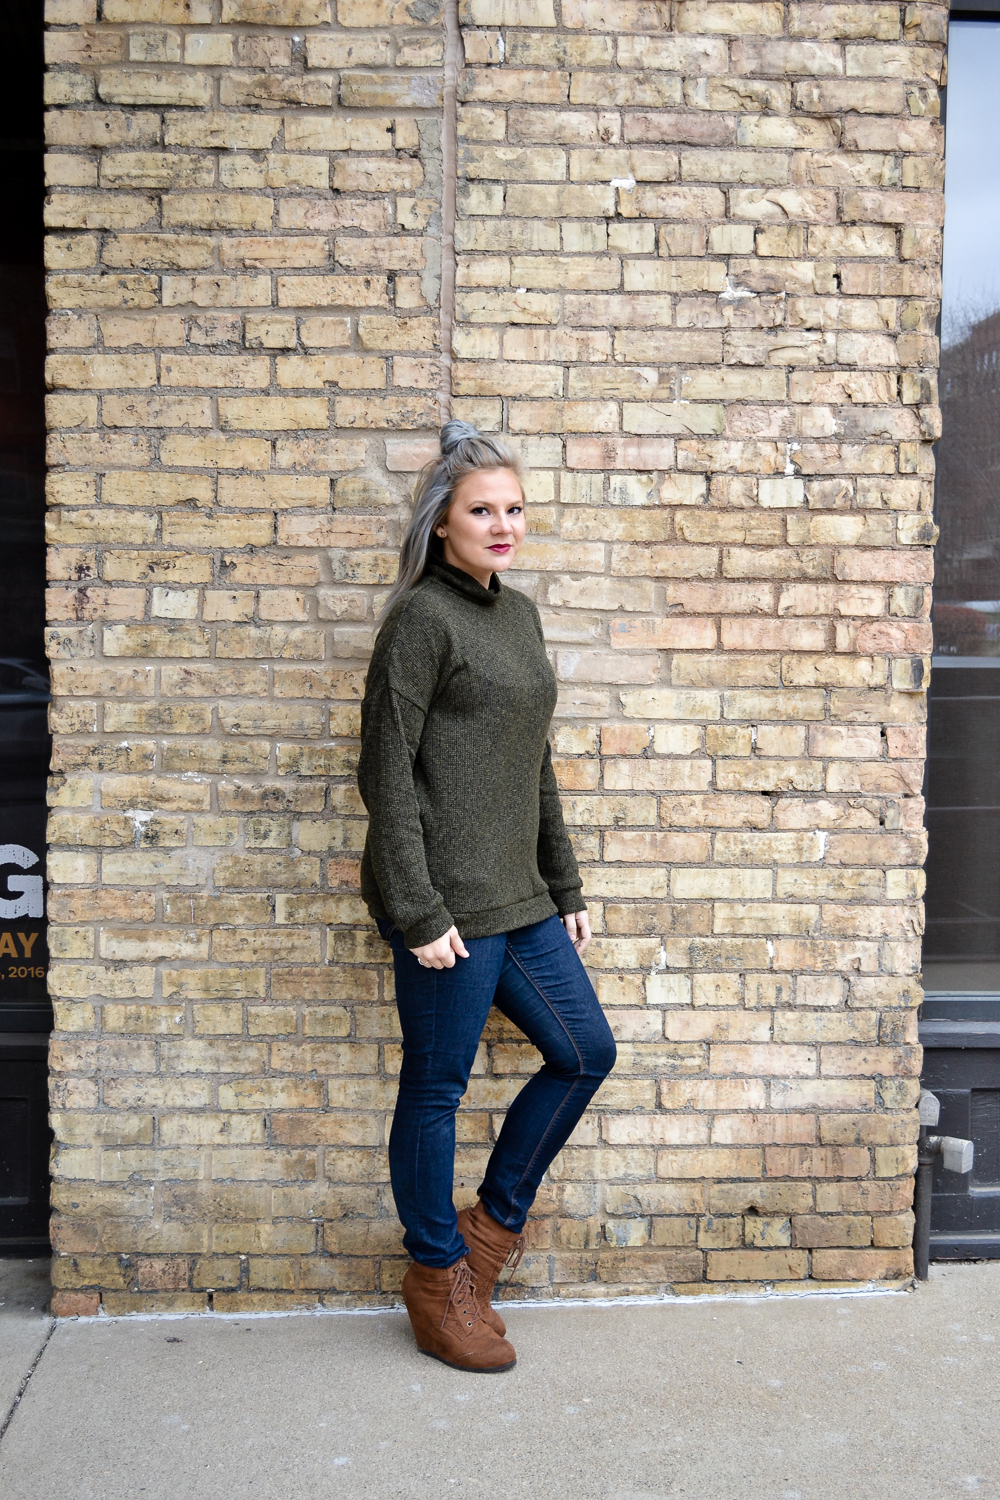 Outfits_Green Sweater_Fall Boots.jpg